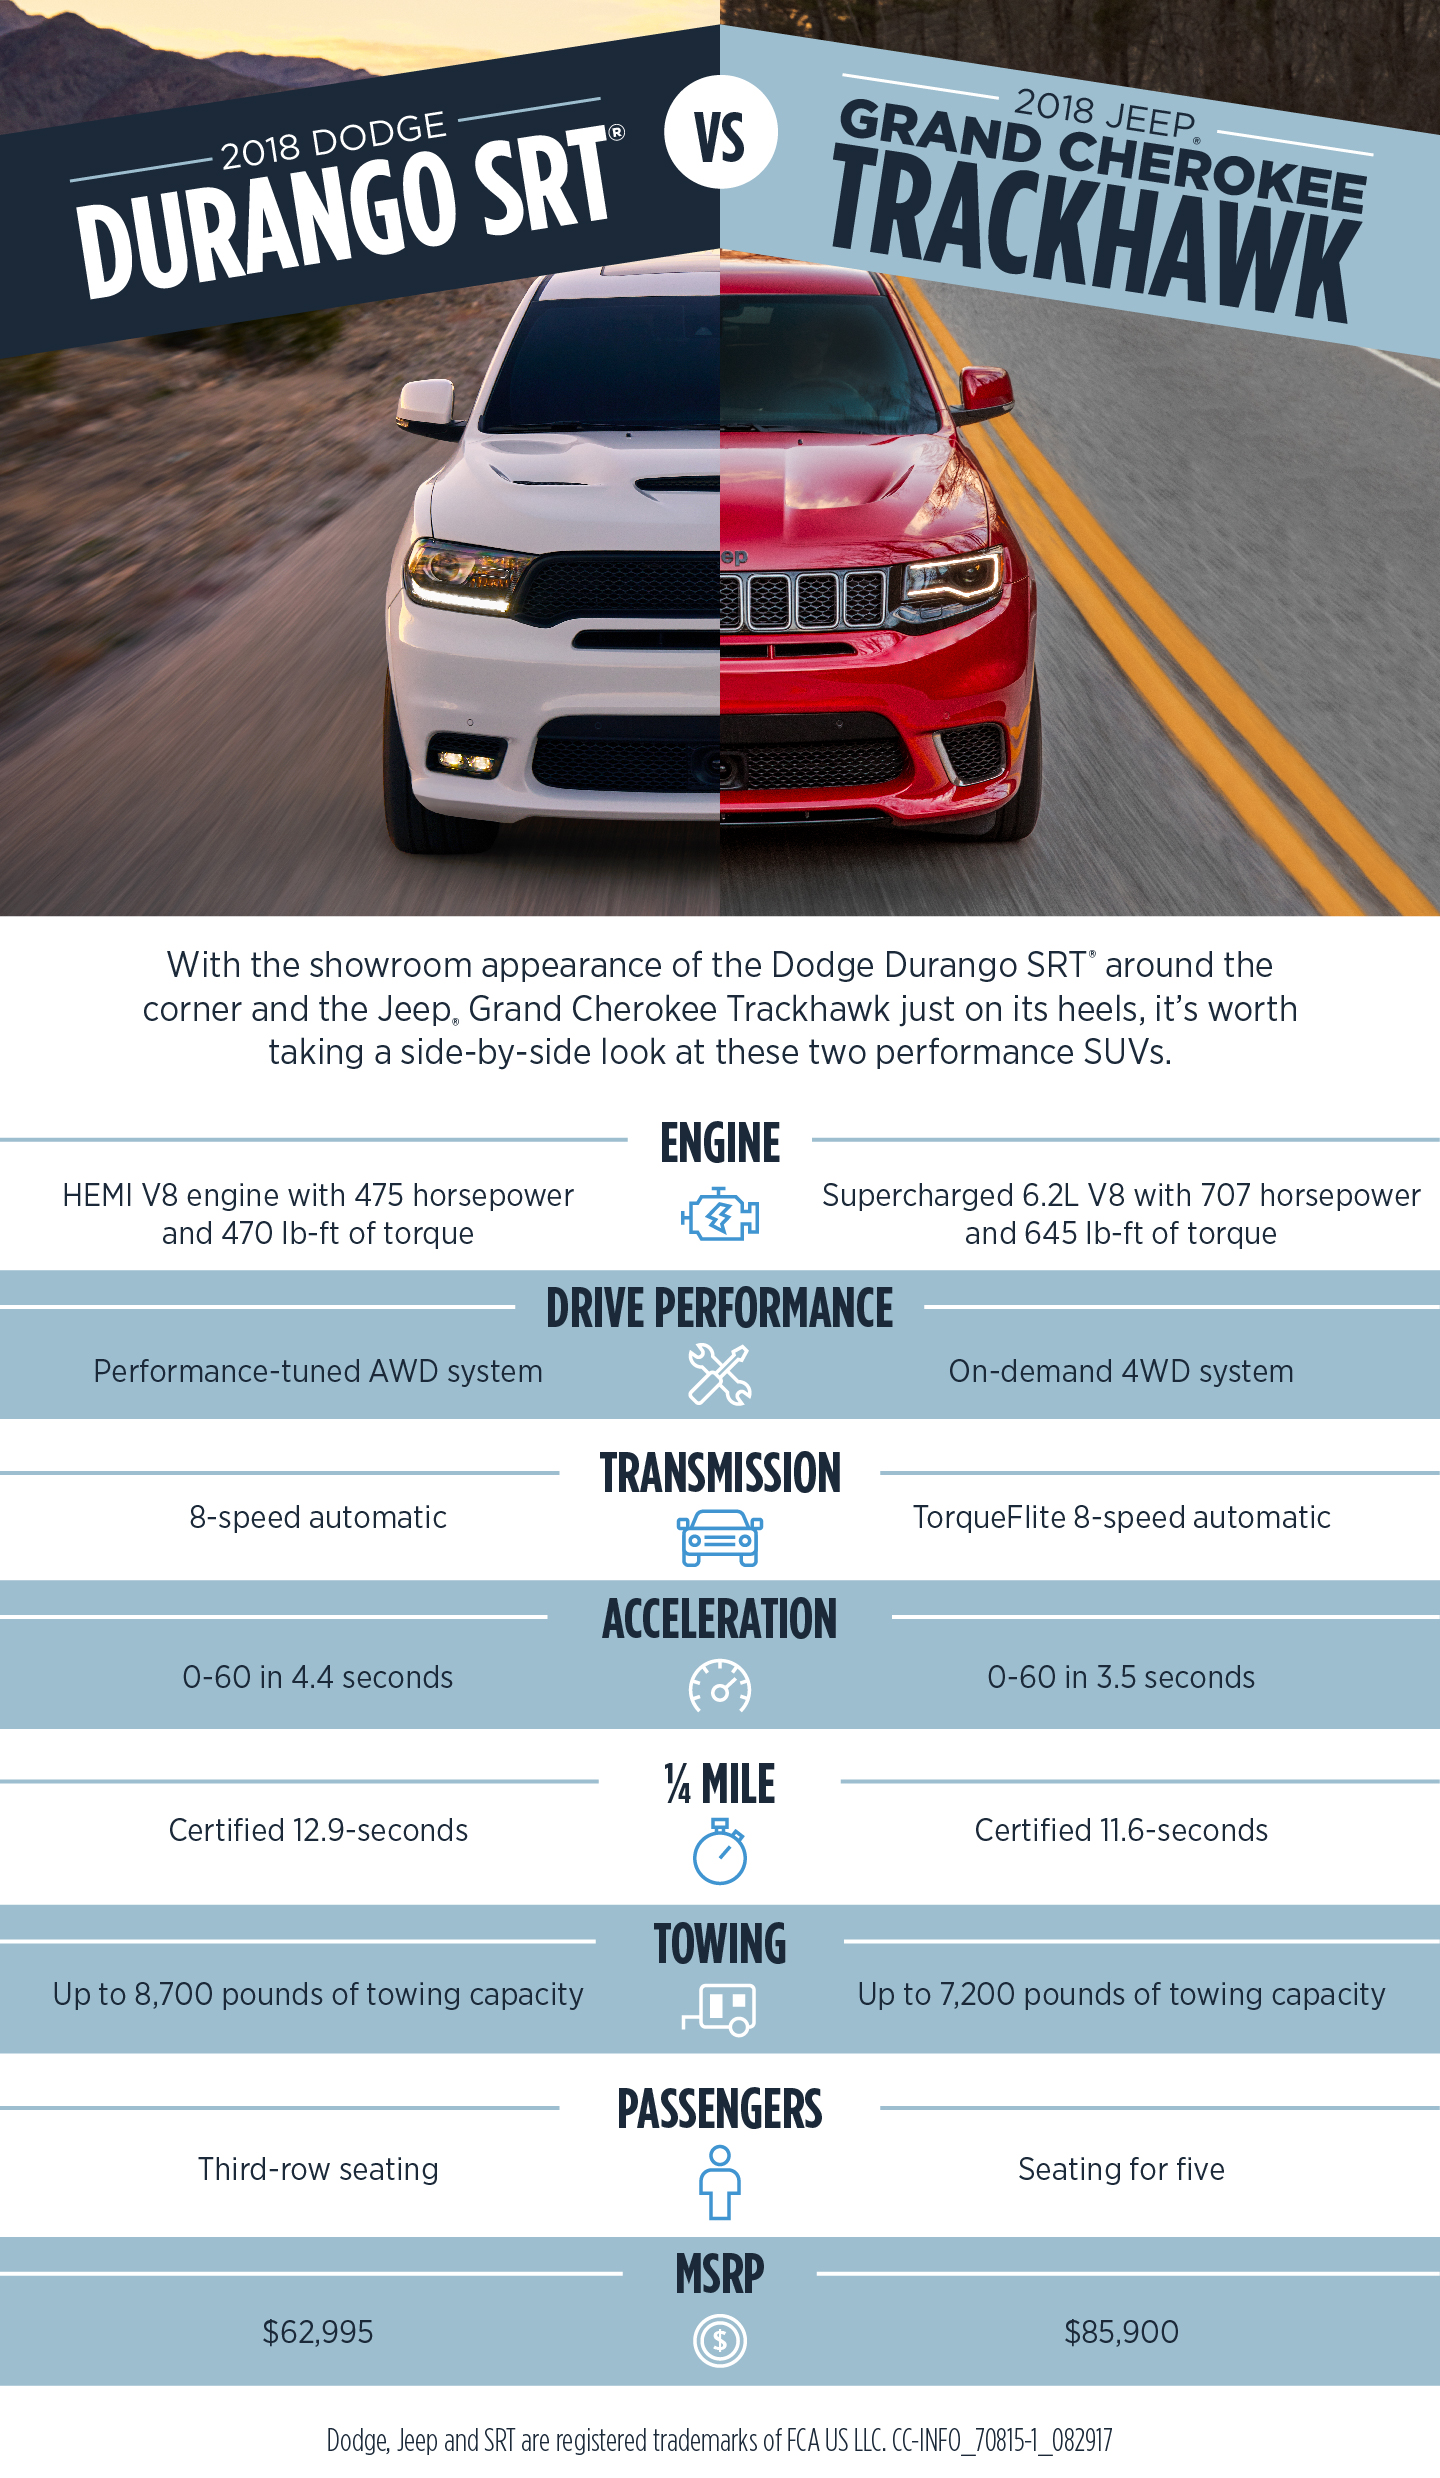 Chrysler Capital Finance >> Dodge Durango SRT® vs Jeep Grand Cherokee Trackhawk - Chrysler Capital